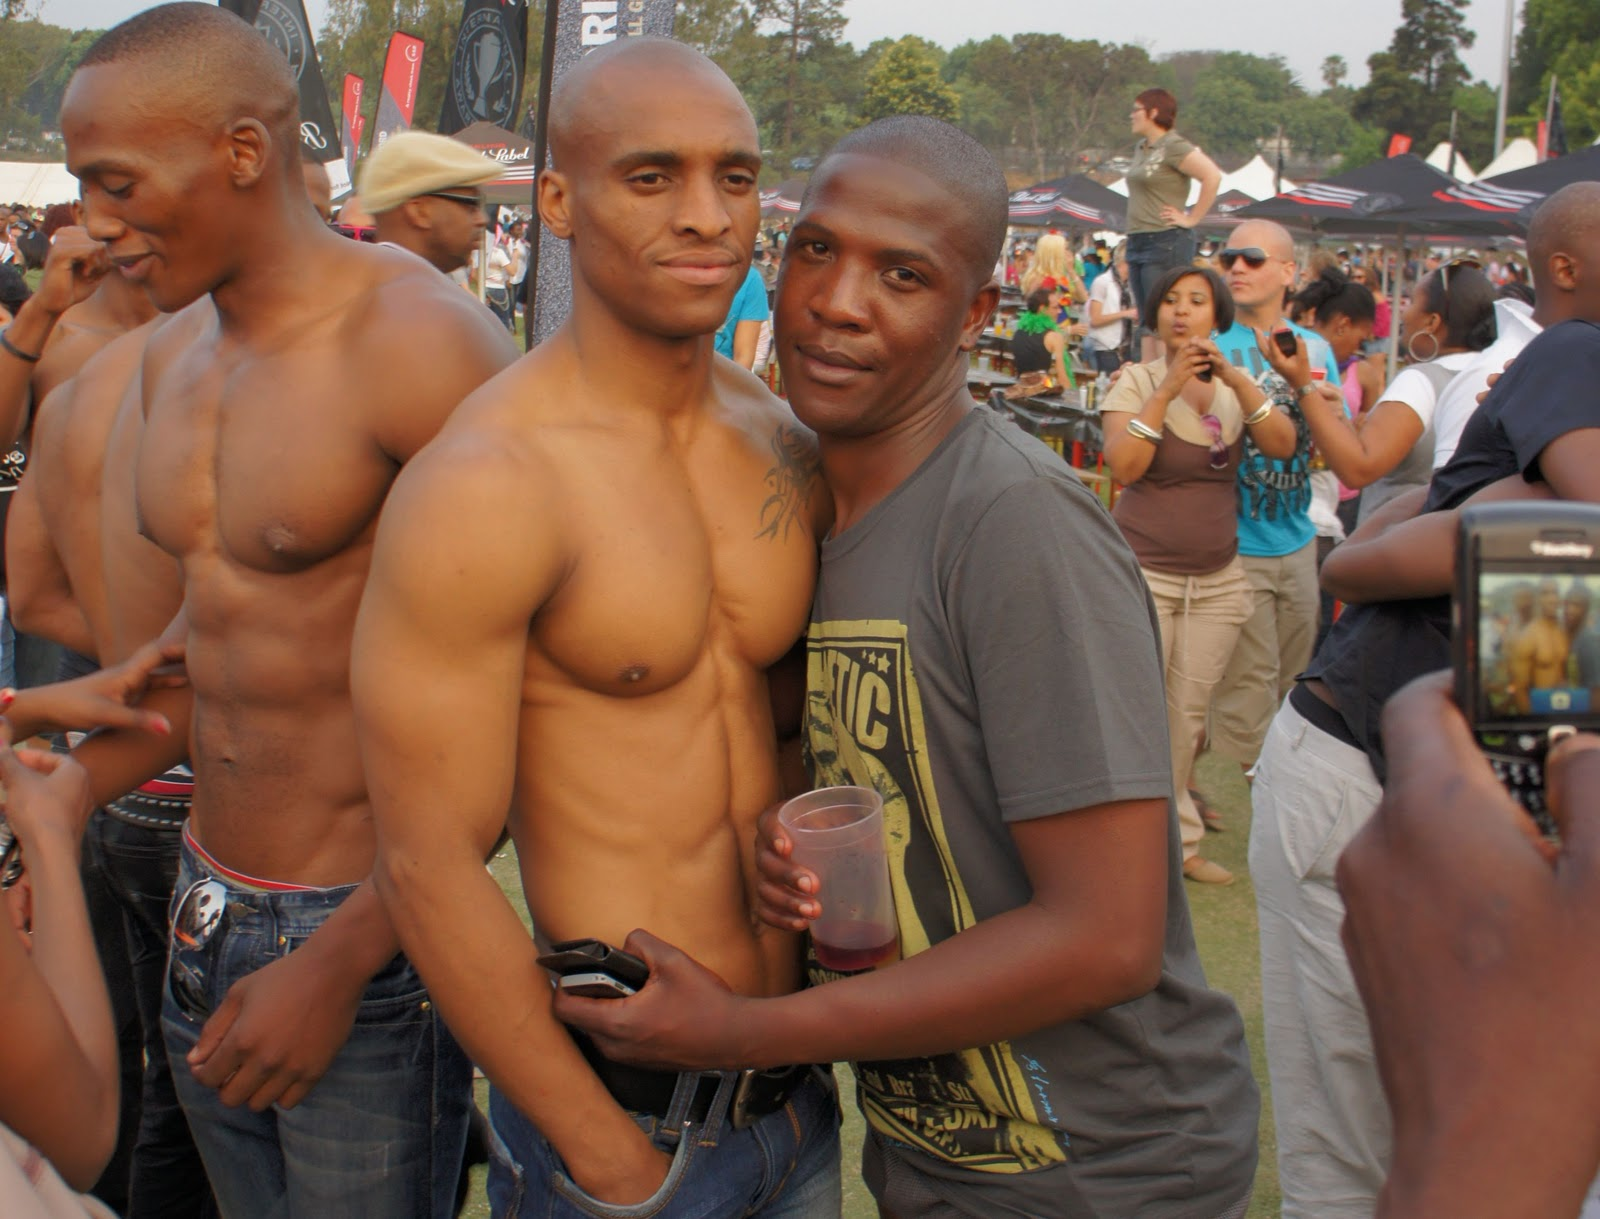 plunge gay singles Jamaica the caribbean island of jamaica, long known for its laid back, party atmosphere has the most choices for singles, with.